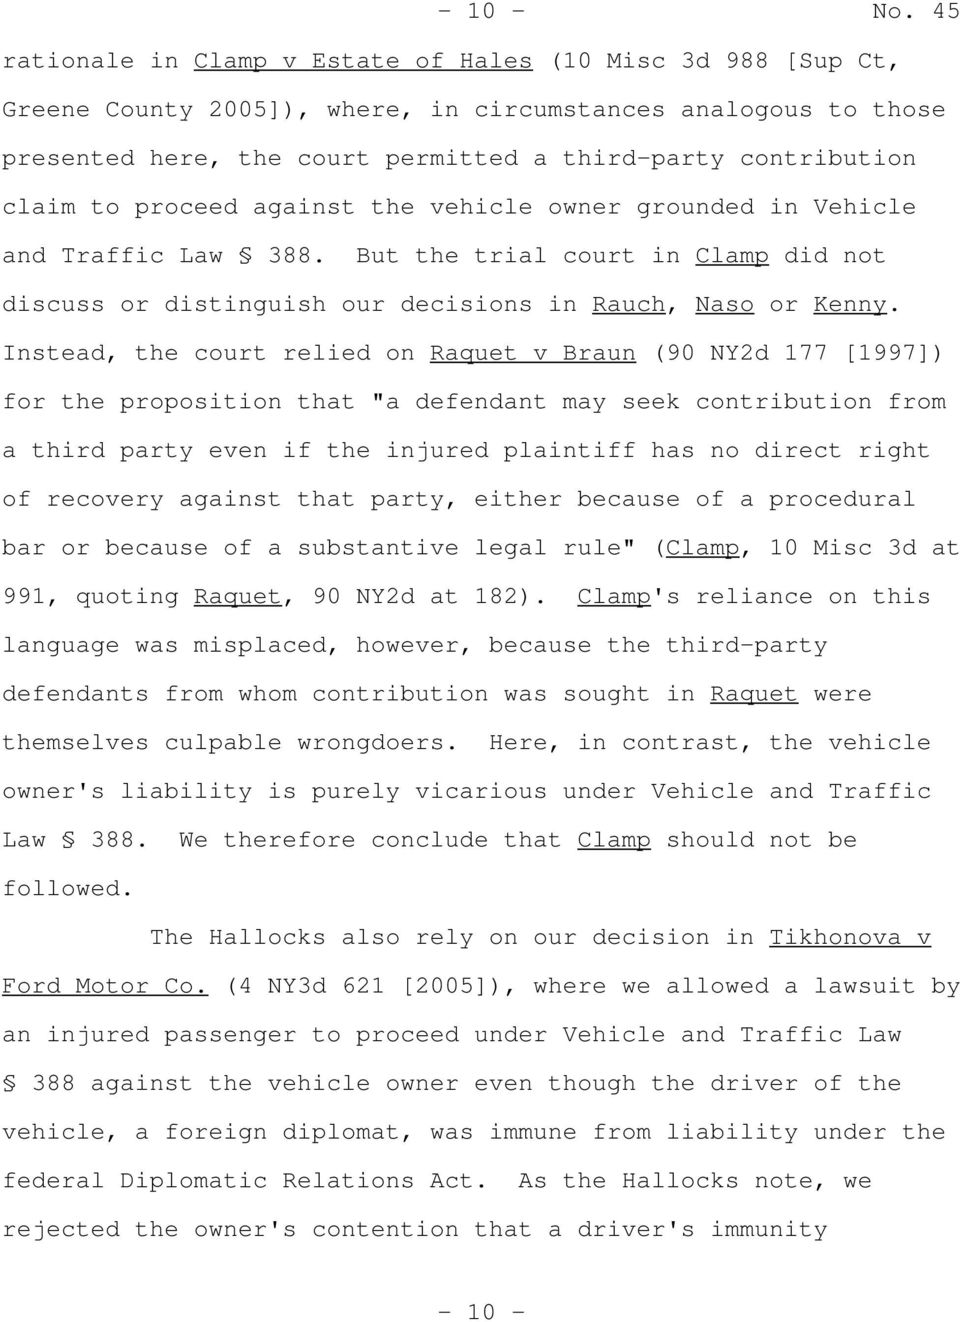 to proceed against the vehicle owner grounded in Vehicle and Traffic Law 388. But the trial court in Clamp did not discuss or distinguish our decisions in Rauch, Naso or Kenny.